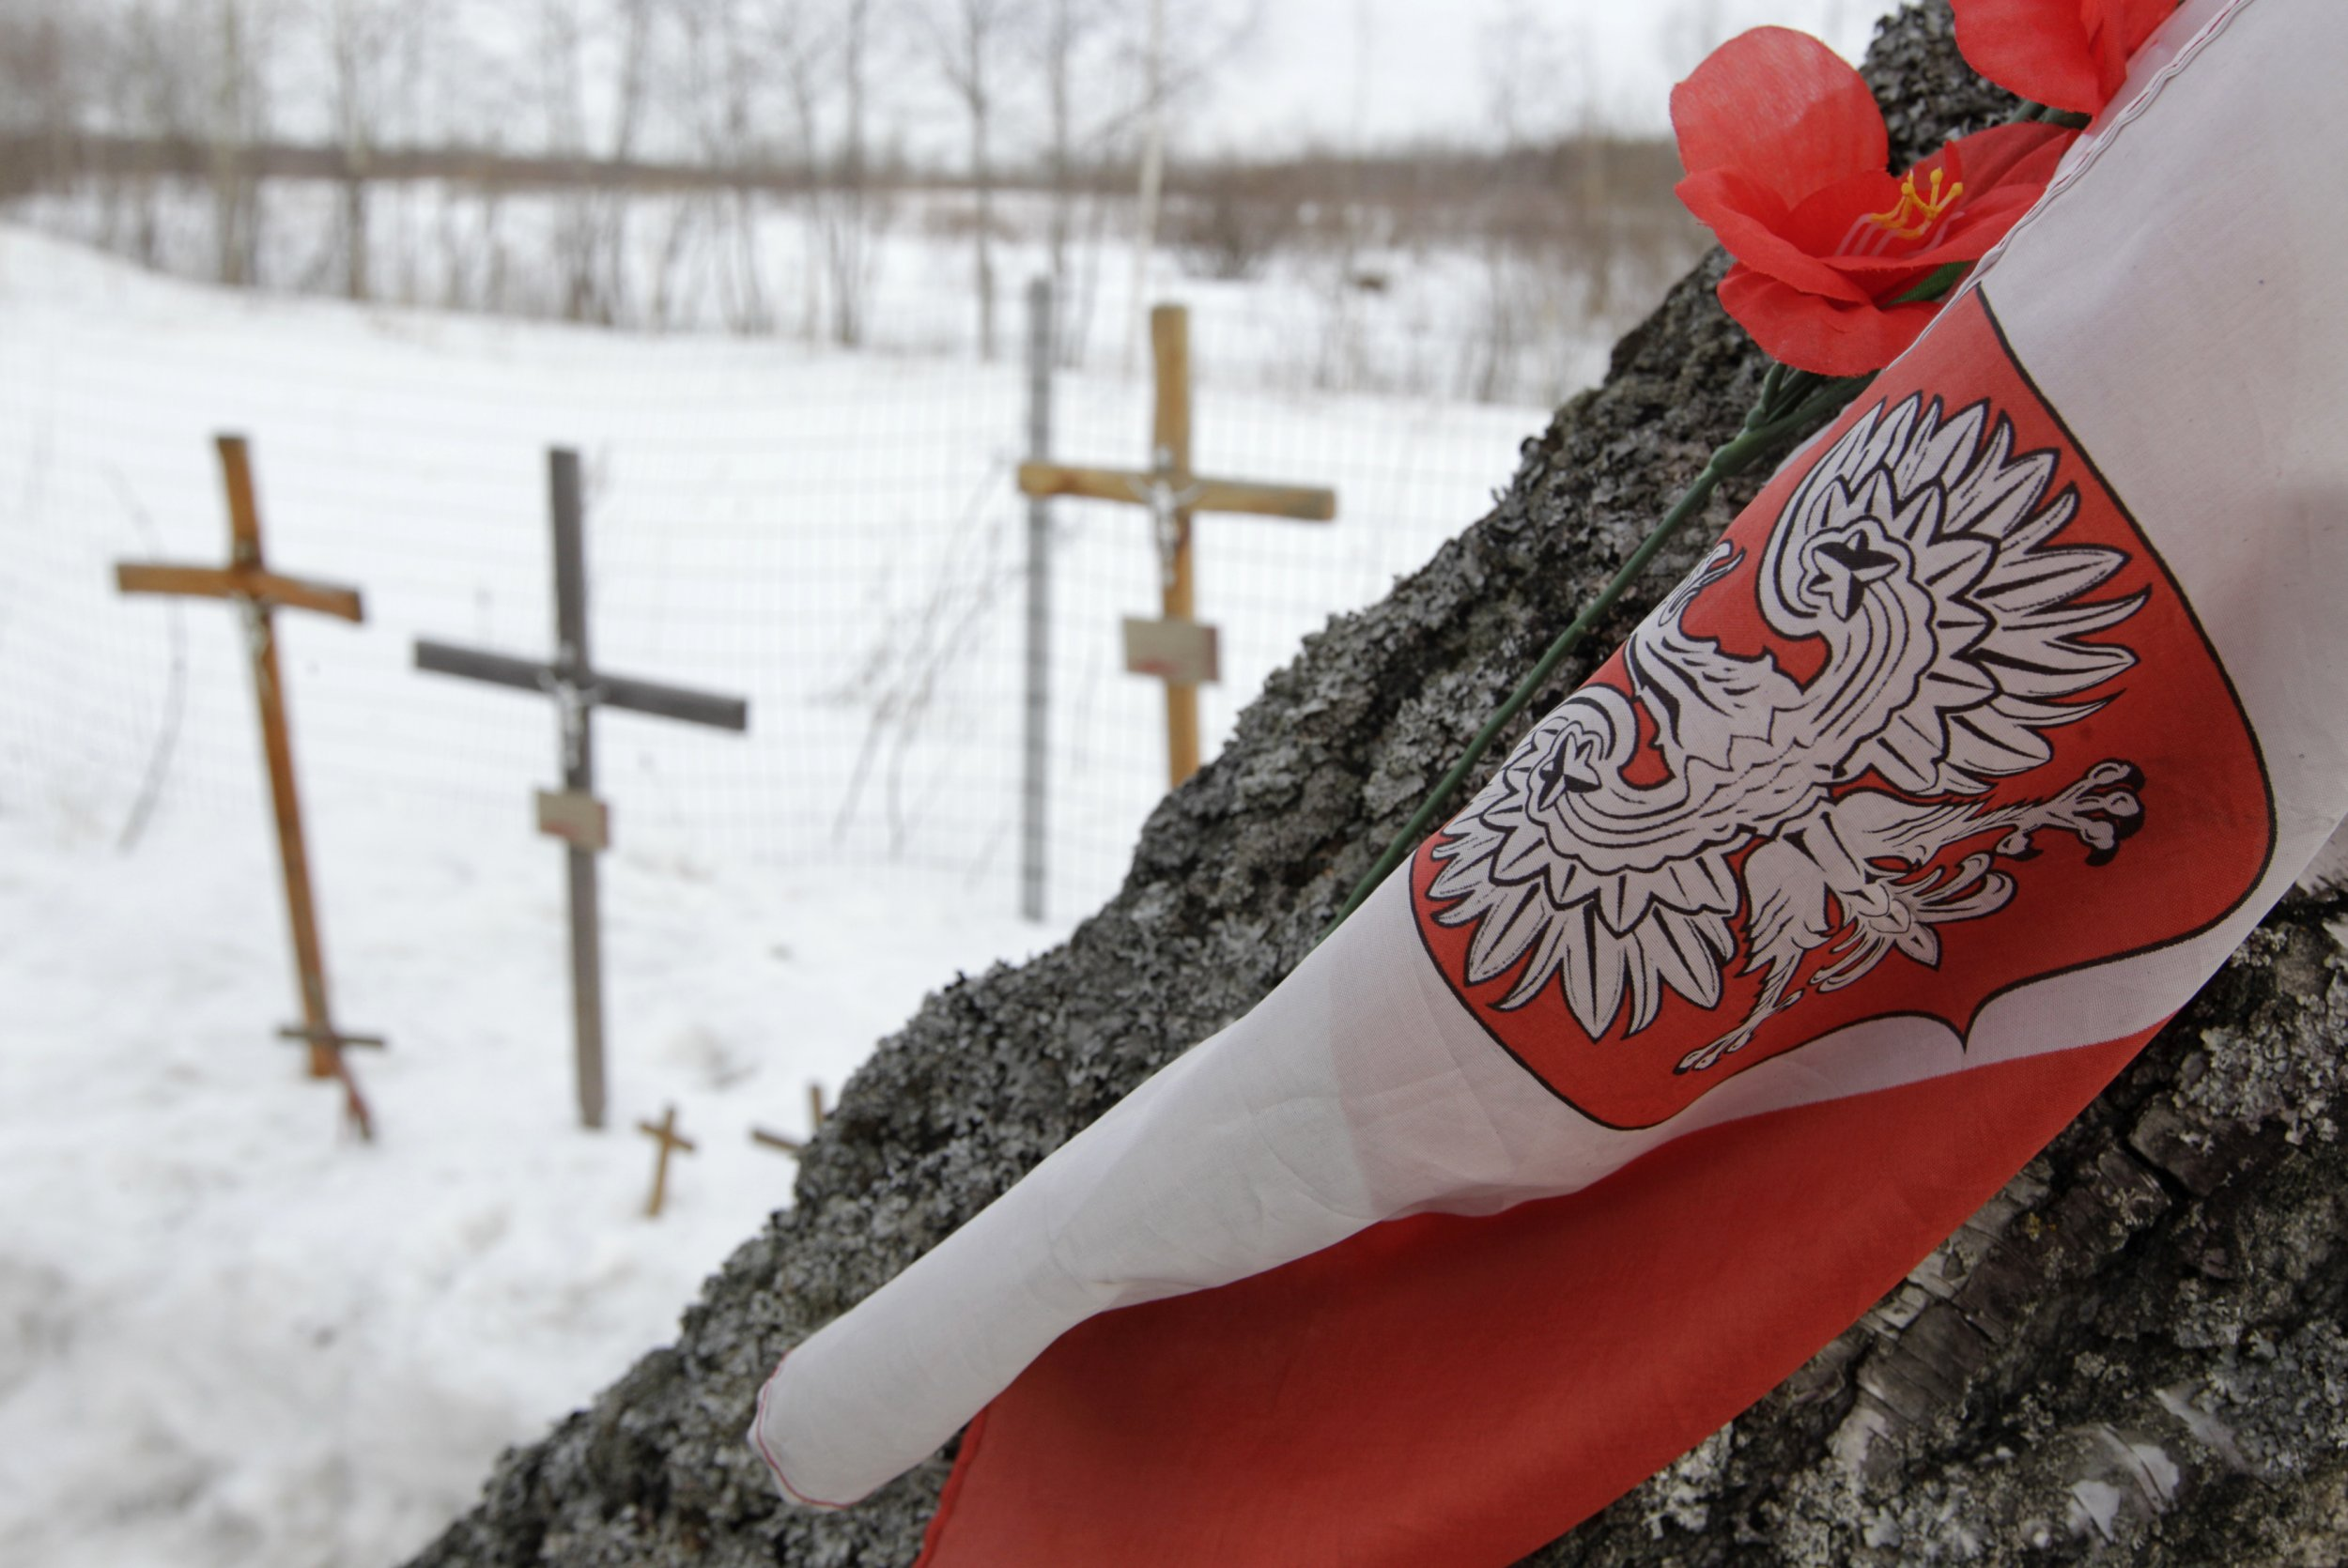 Smolensk air crash 2010